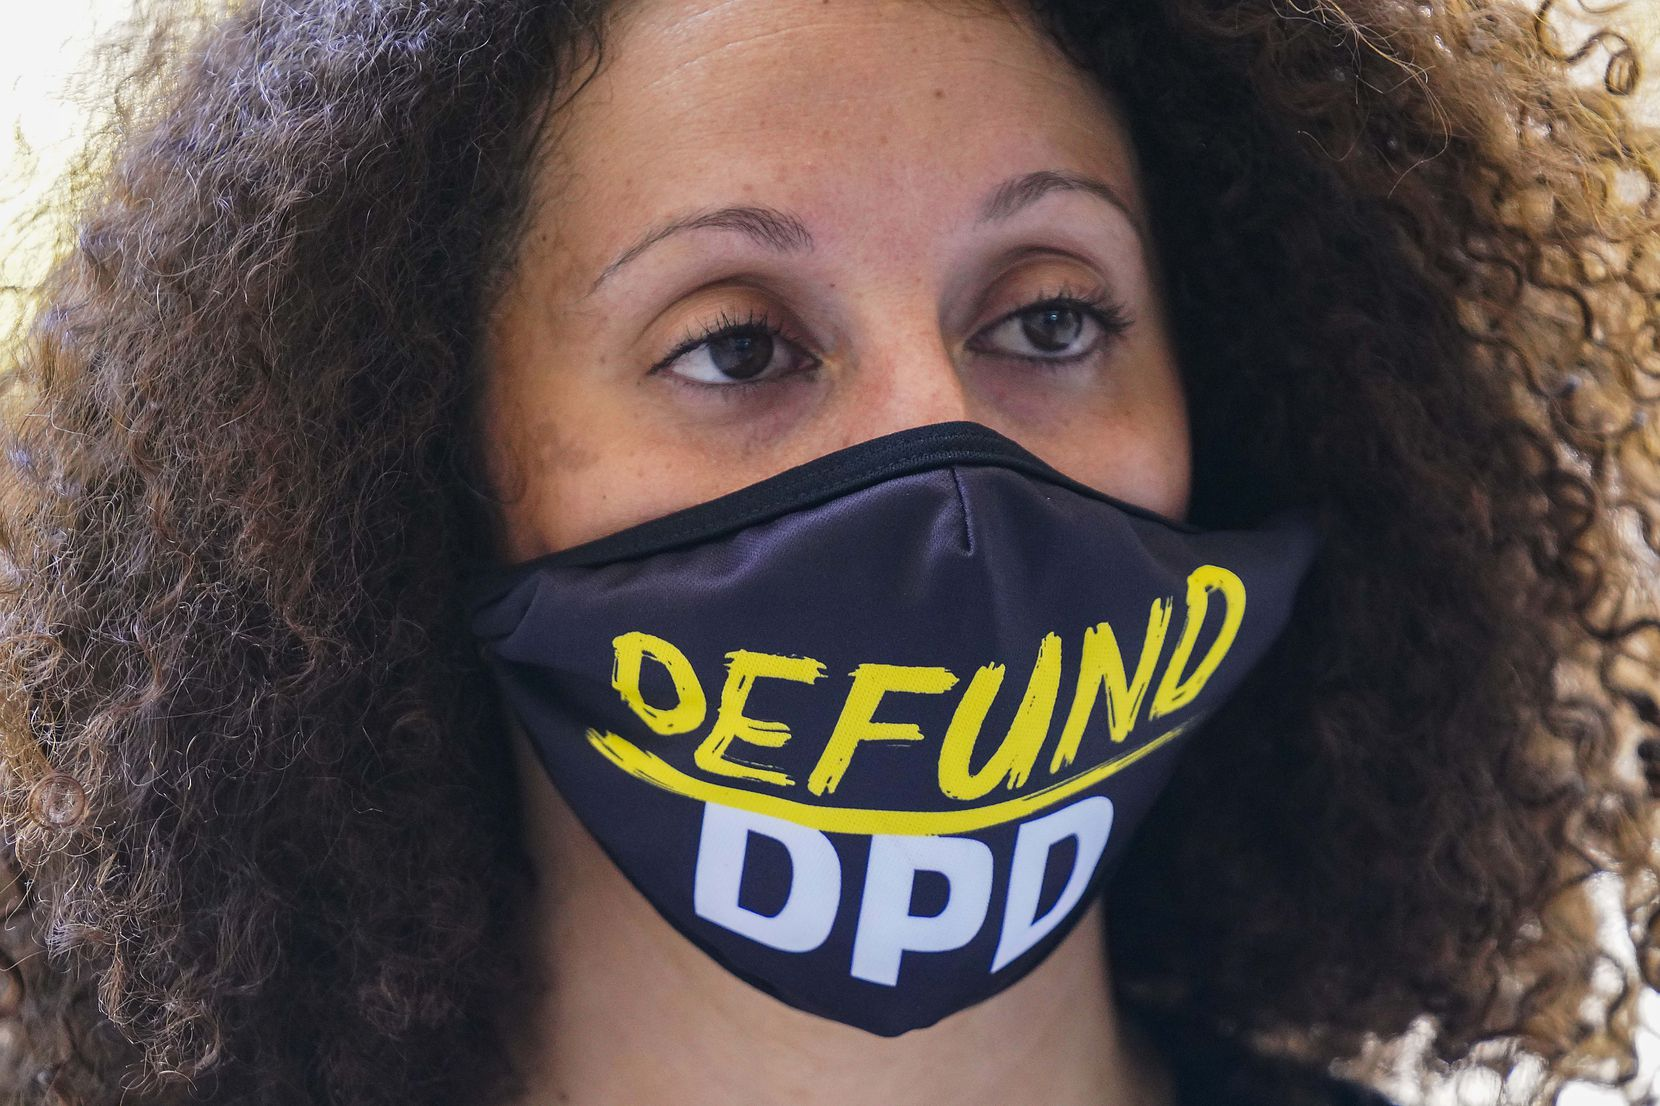 Sara Mokuria of Mothers Against Police Brutality wears a face mask reading ÔDefund DPDÕ during a rally commemorating Juneteenth at Dallas City Hall on Friday, June 19, 2020.  (Smiley N. Pool/The Dallas Morning News)